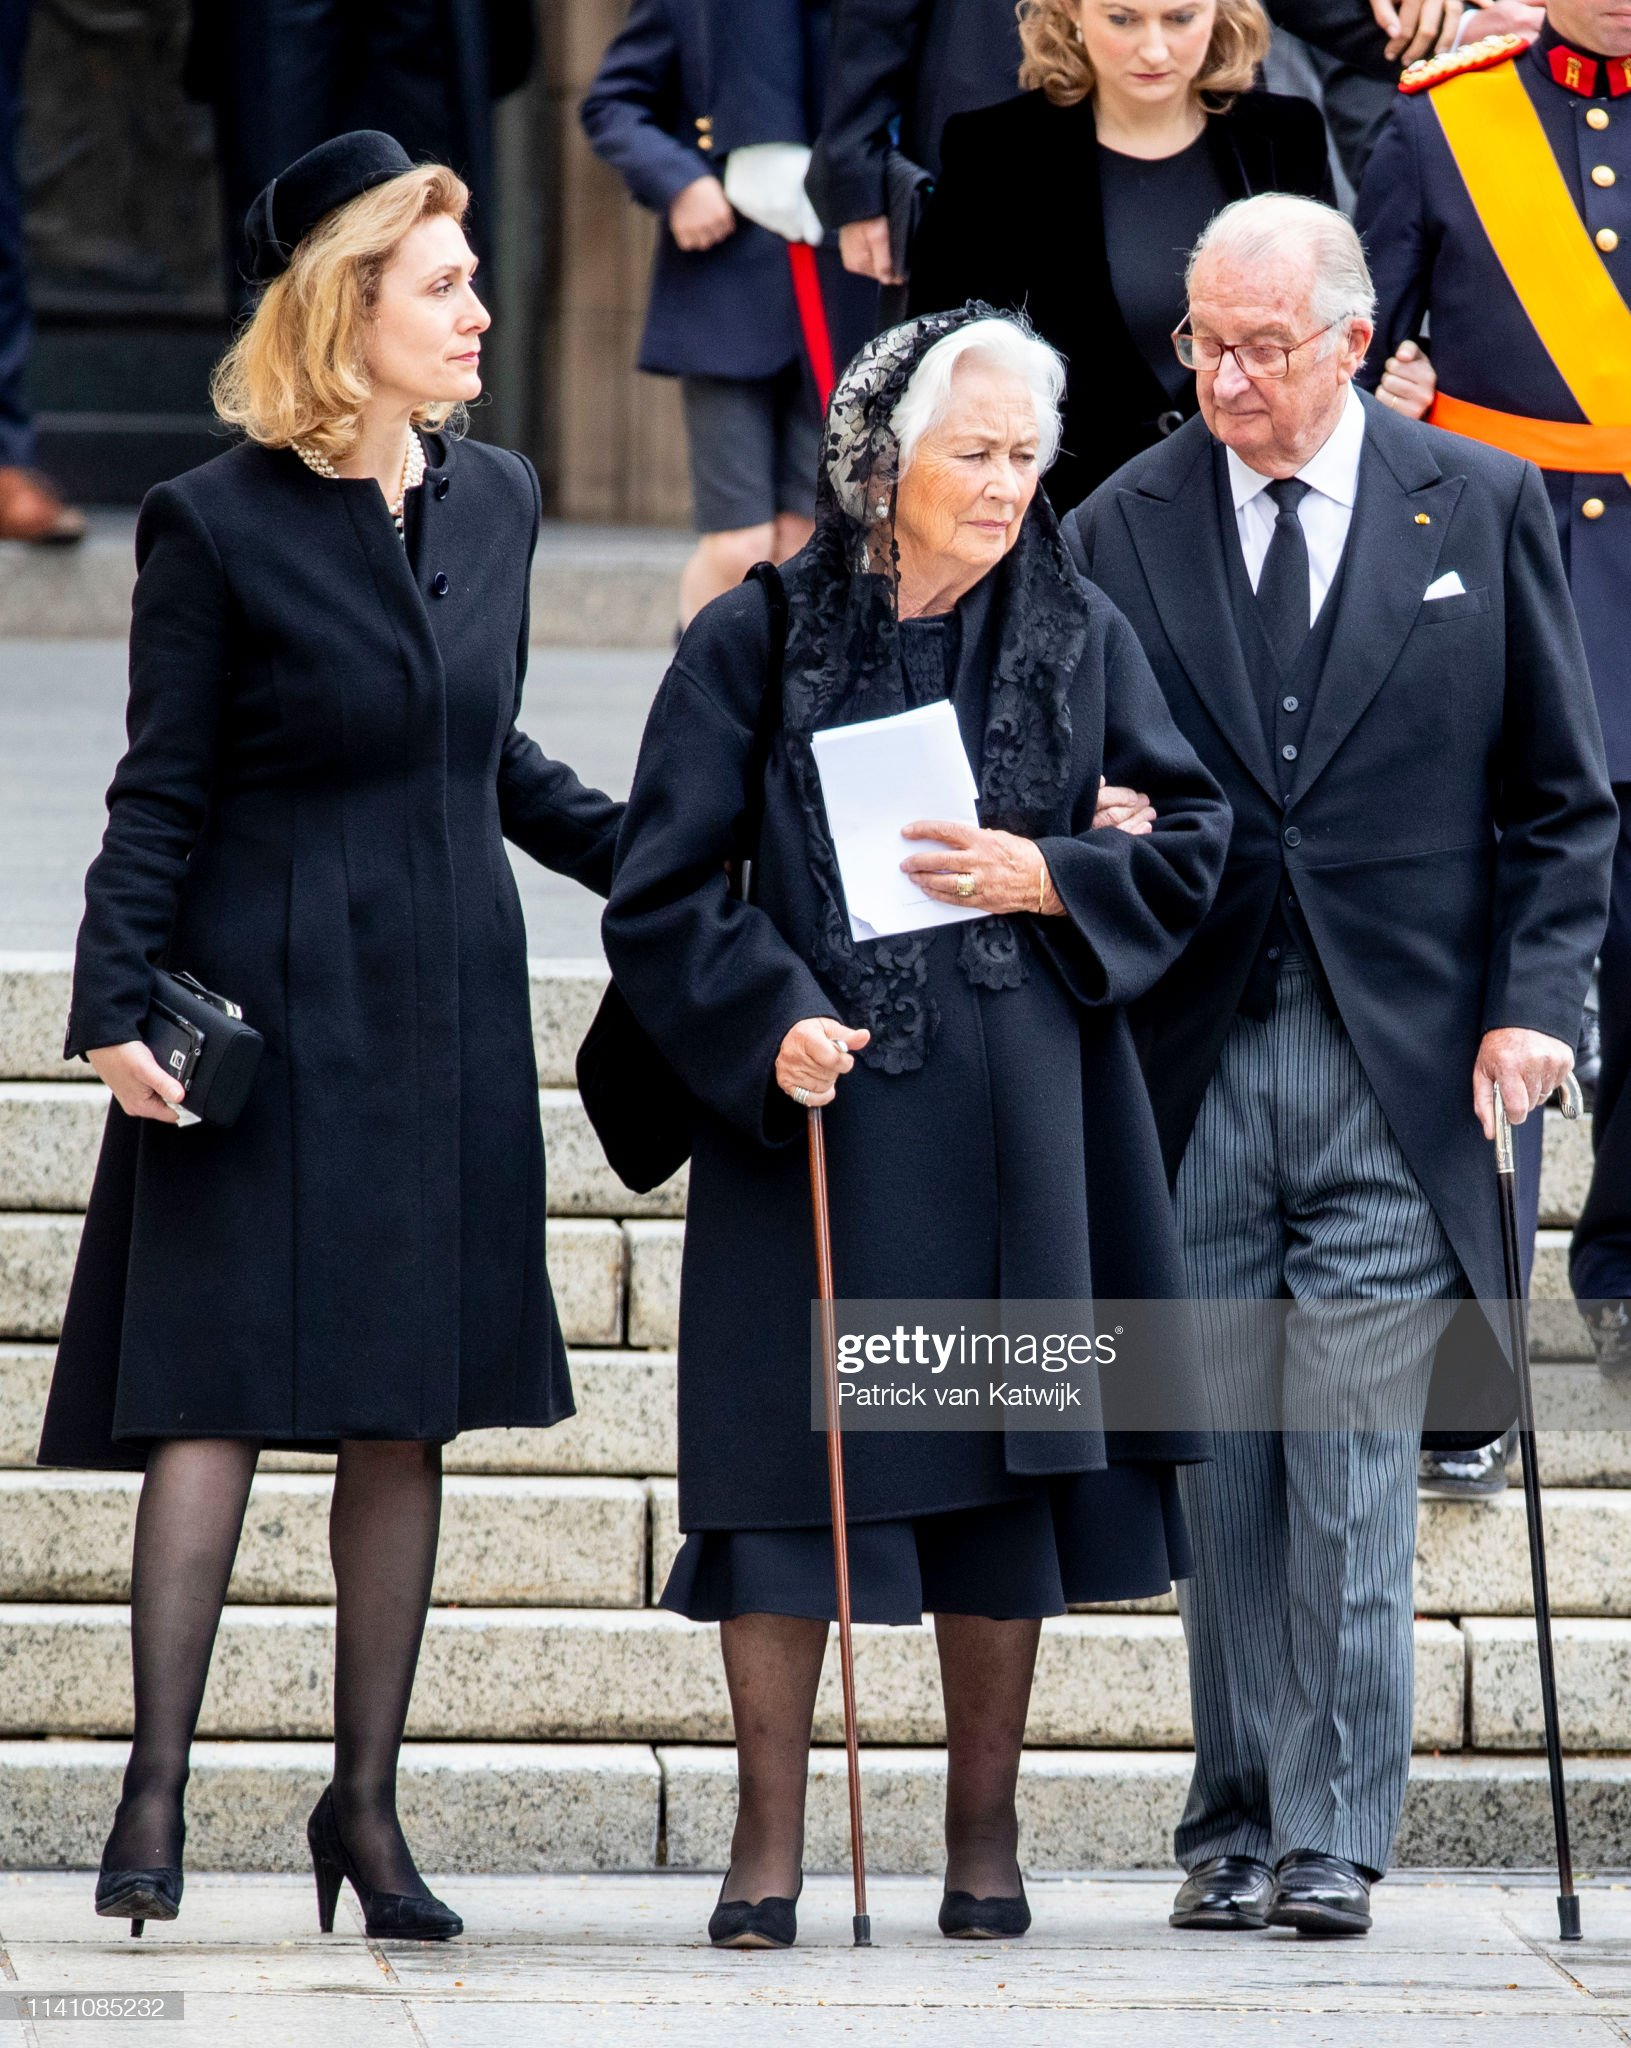 Похороны Великого Герцога Жана https://media.gettyimages.com/photos/king-albert-of-belgium-and-queen-paola-of-belgium-and-princess-of-picture-id1141085232?s=2048x2048